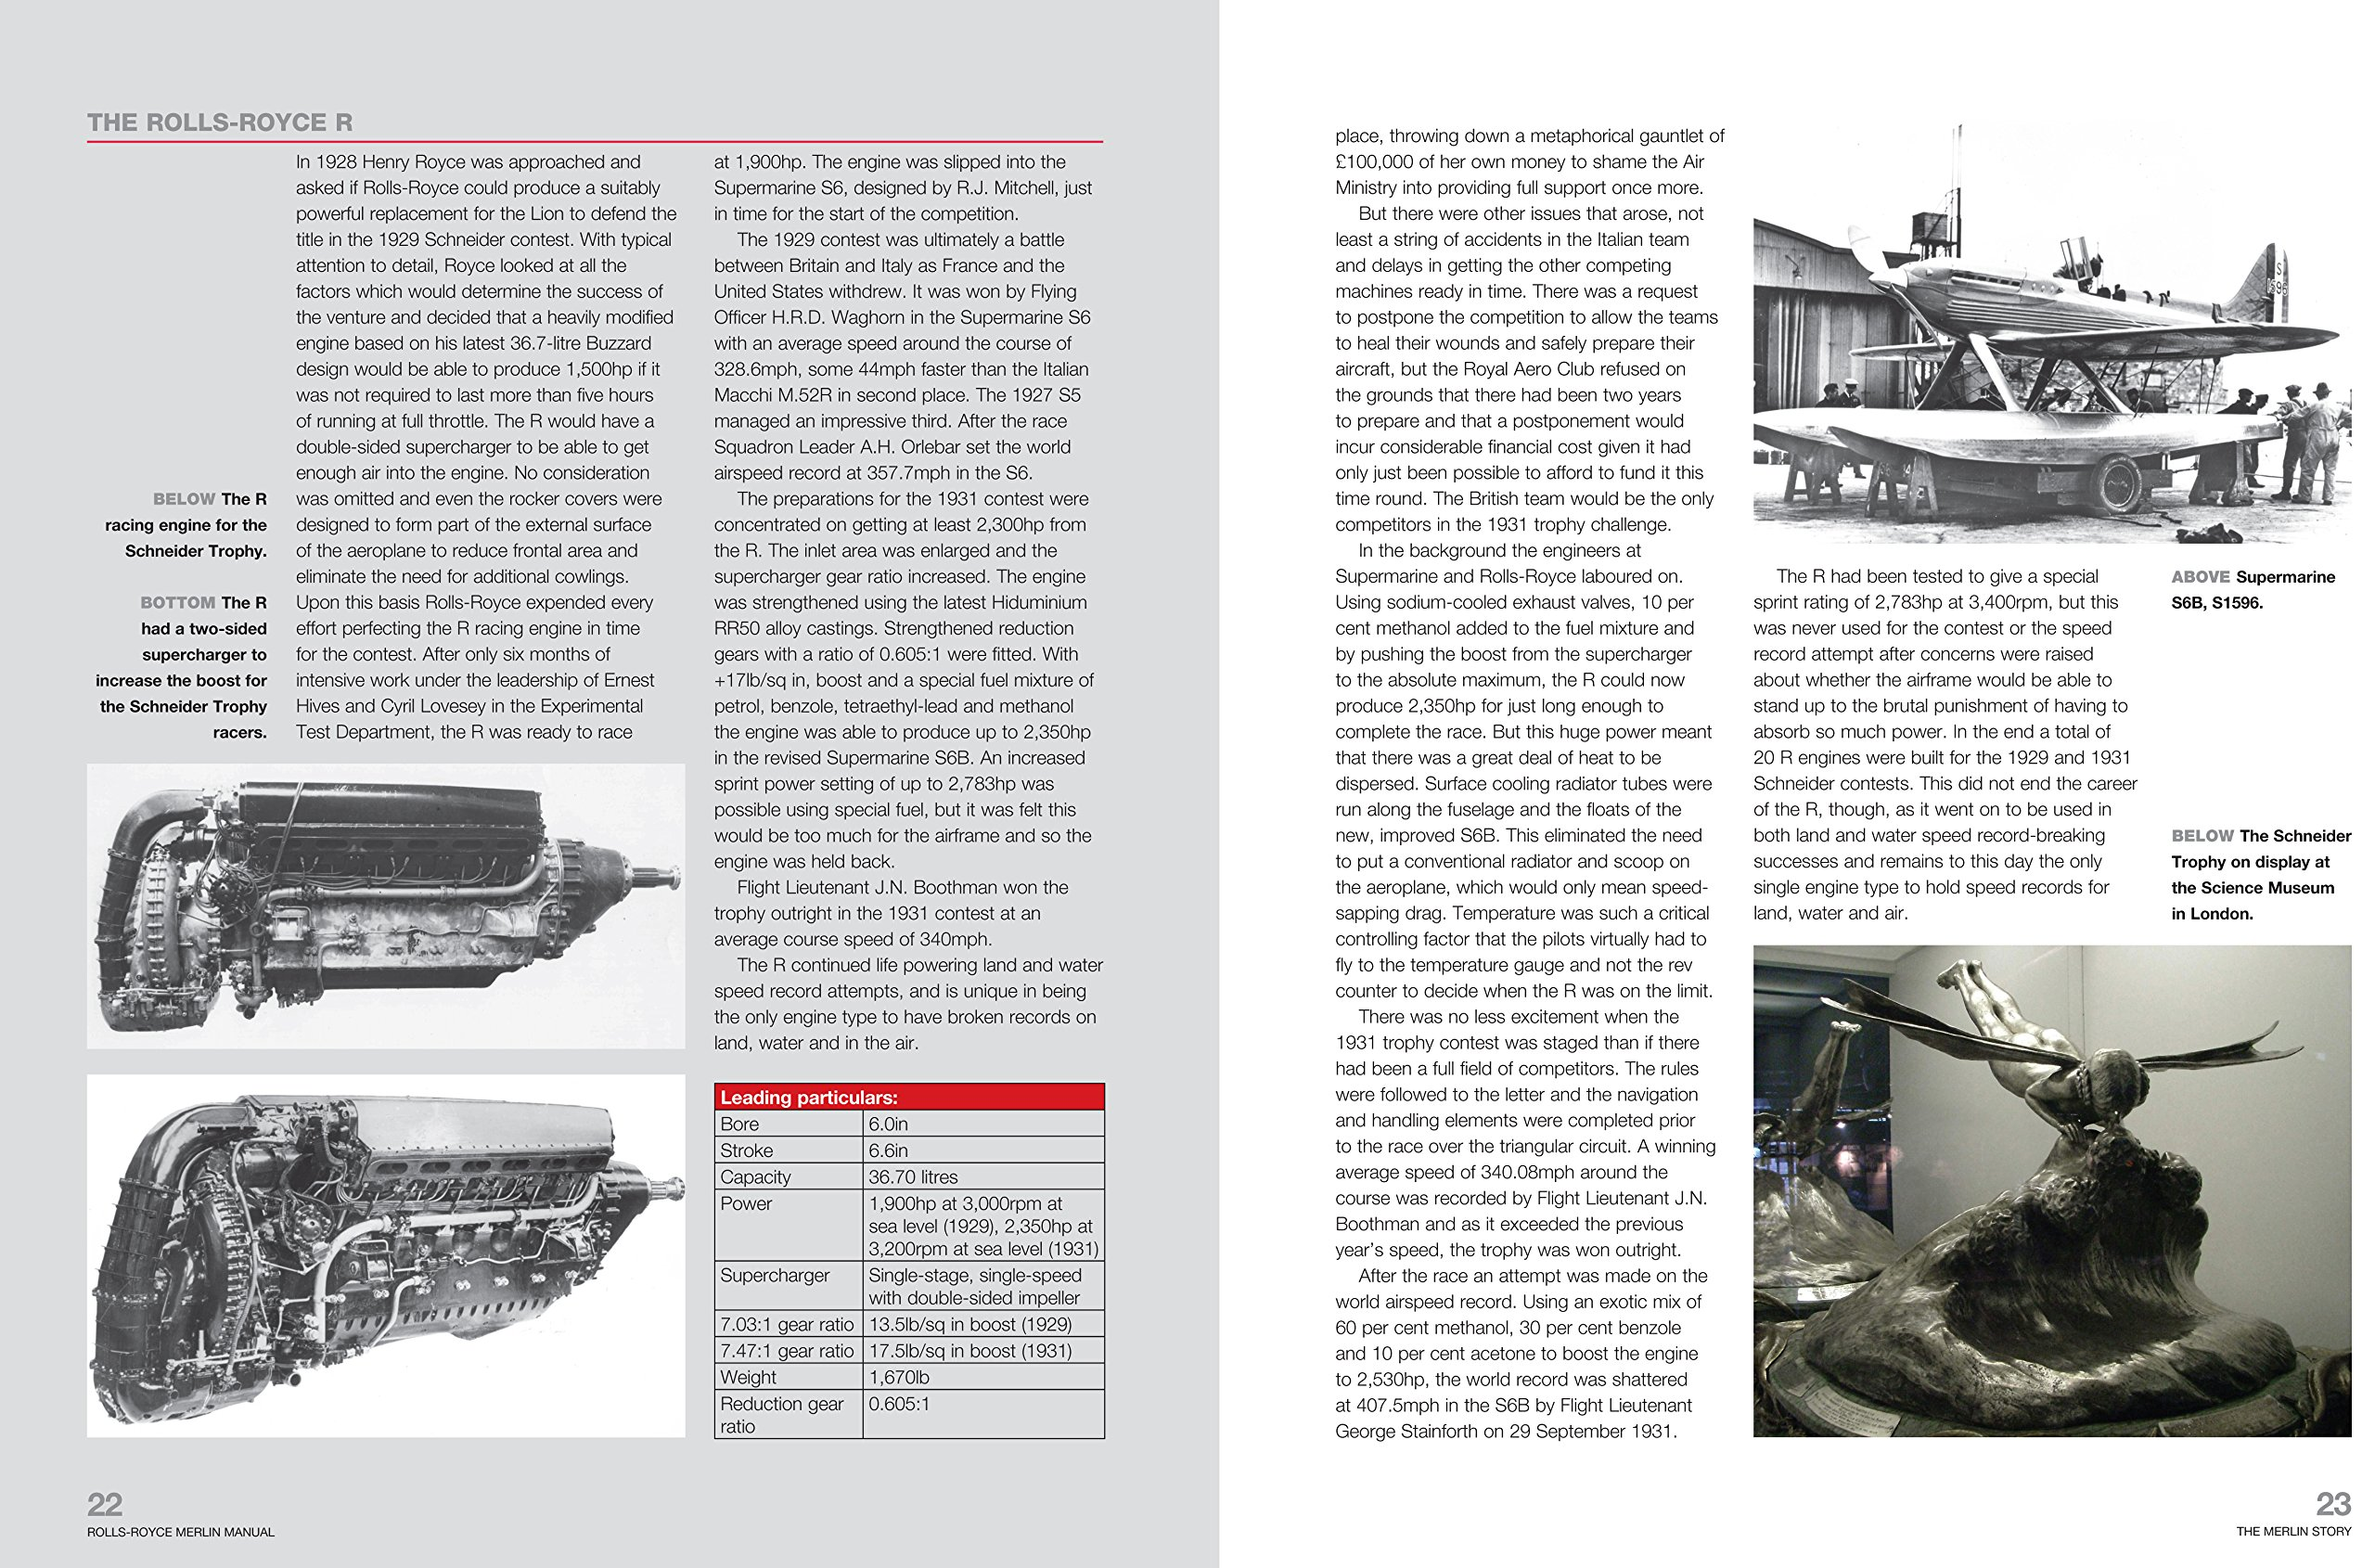 Rolls royce merlin manual 1933 50 all engine models an insight rolls royce merlin manual 1933 50 all engine models an insight into the design construction operation and maintenance of the legendary world wa fandeluxe Choice Image